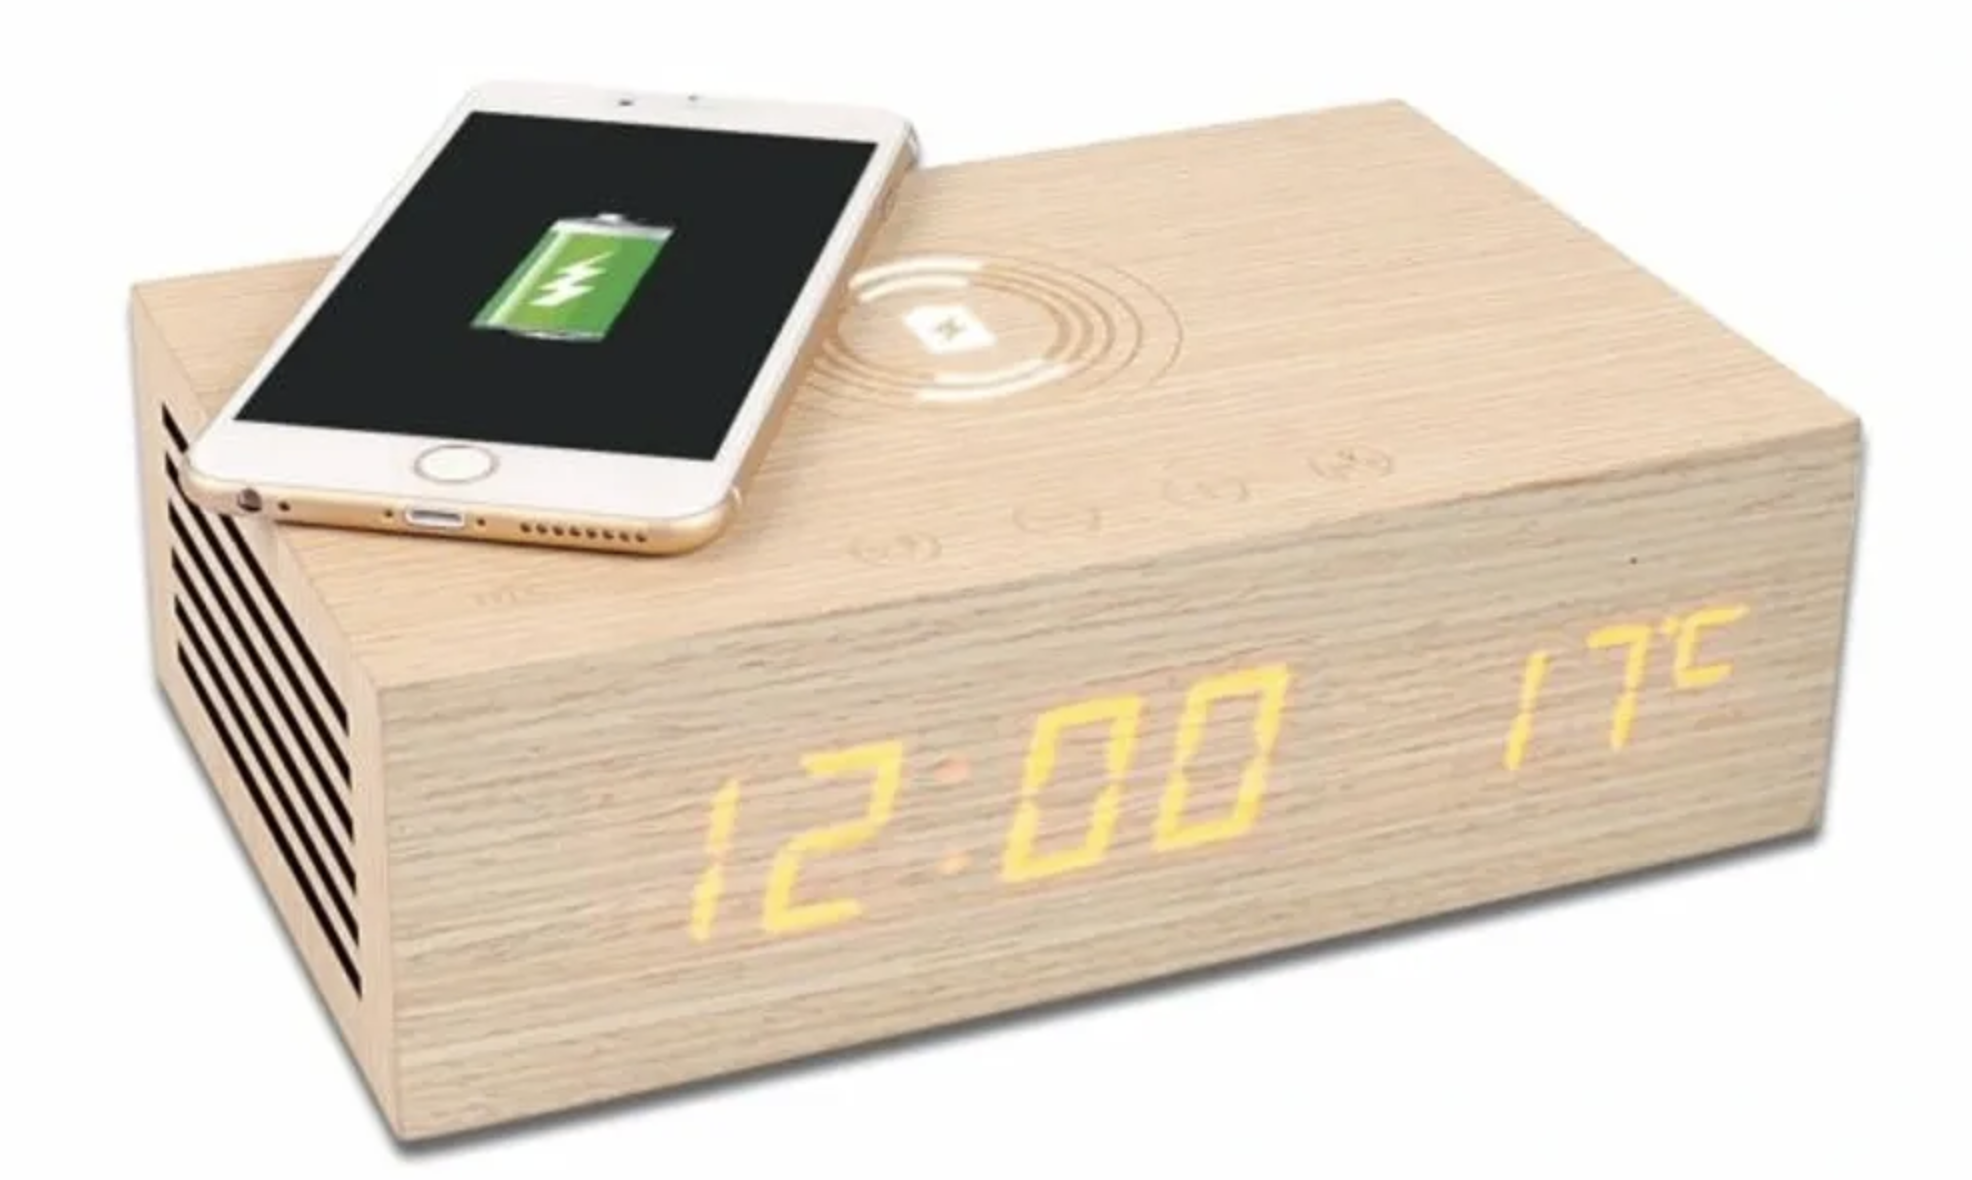 The unit has a wireless charging function, wired charging through two USB ports and a thermometer option.